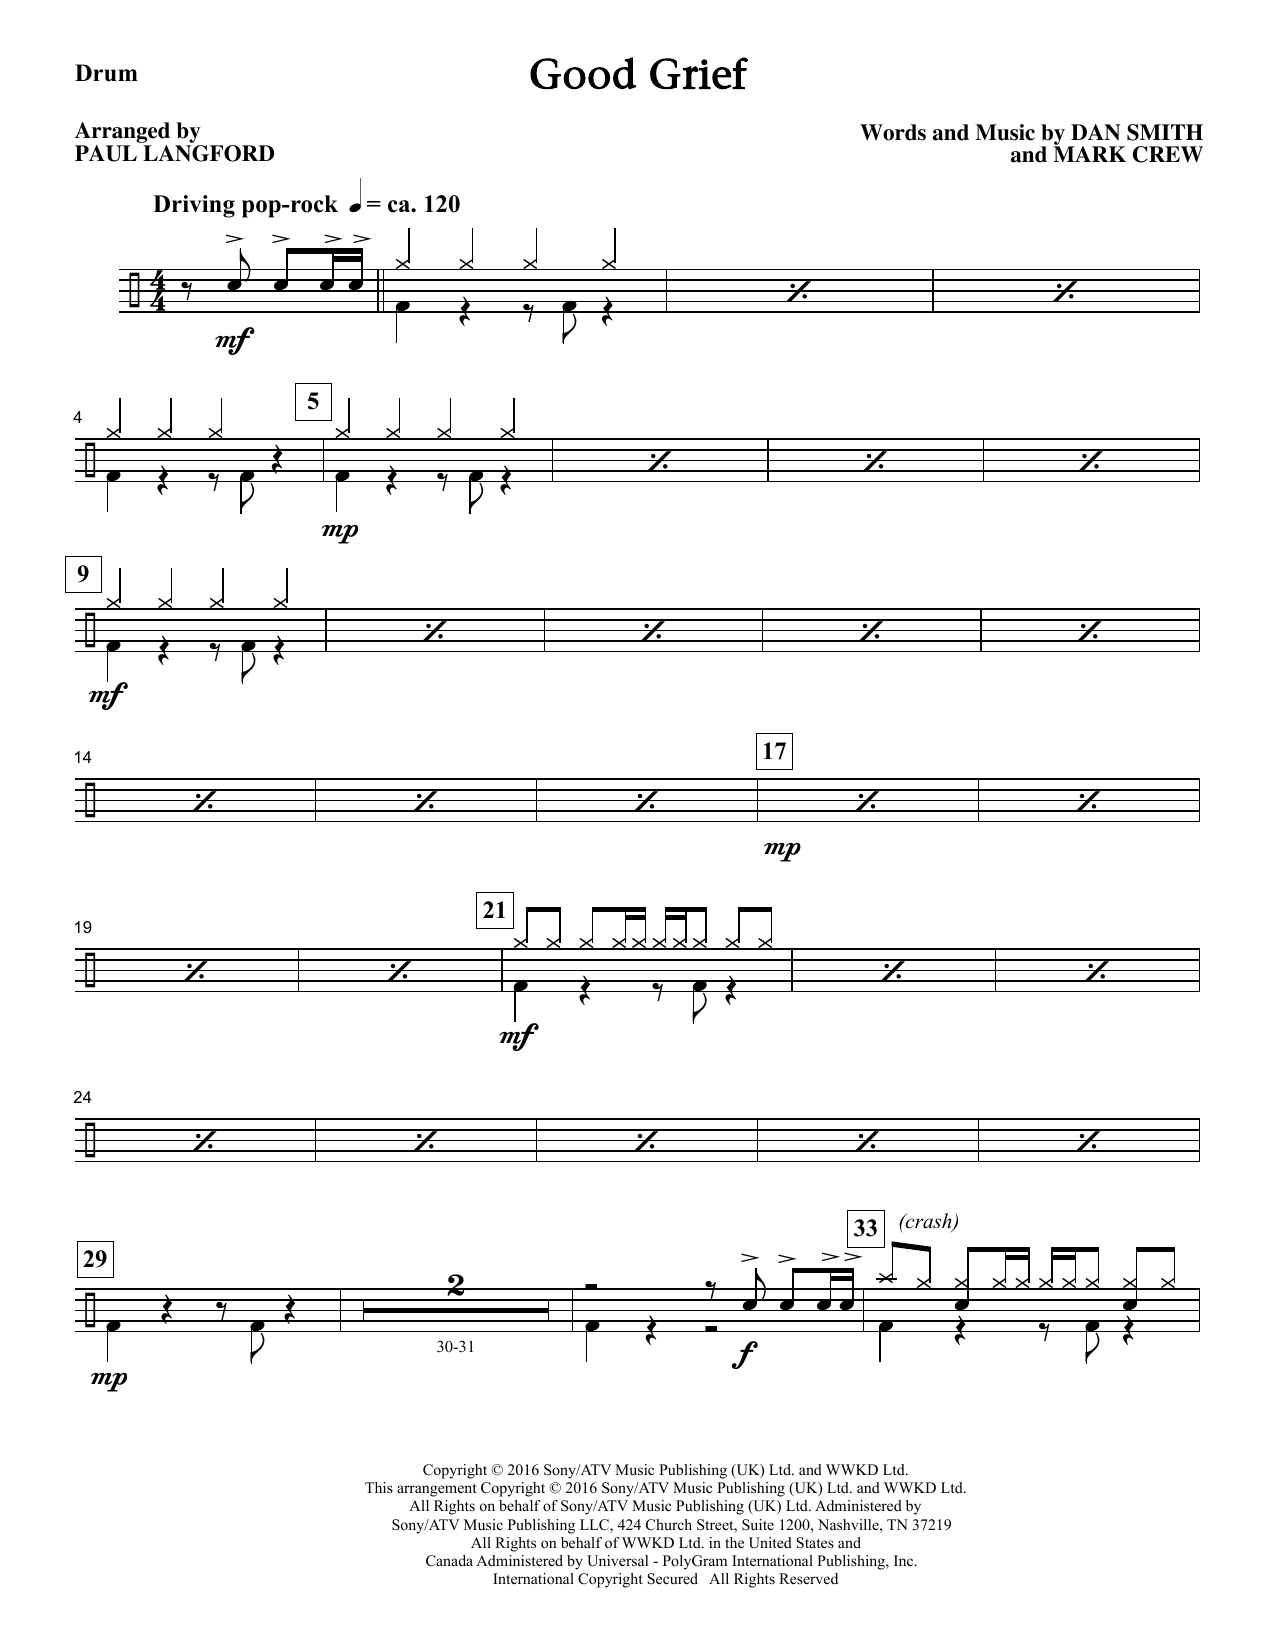 Paul Langford Good Grief - Drums sheet music notes and chords. Download Printable PDF.